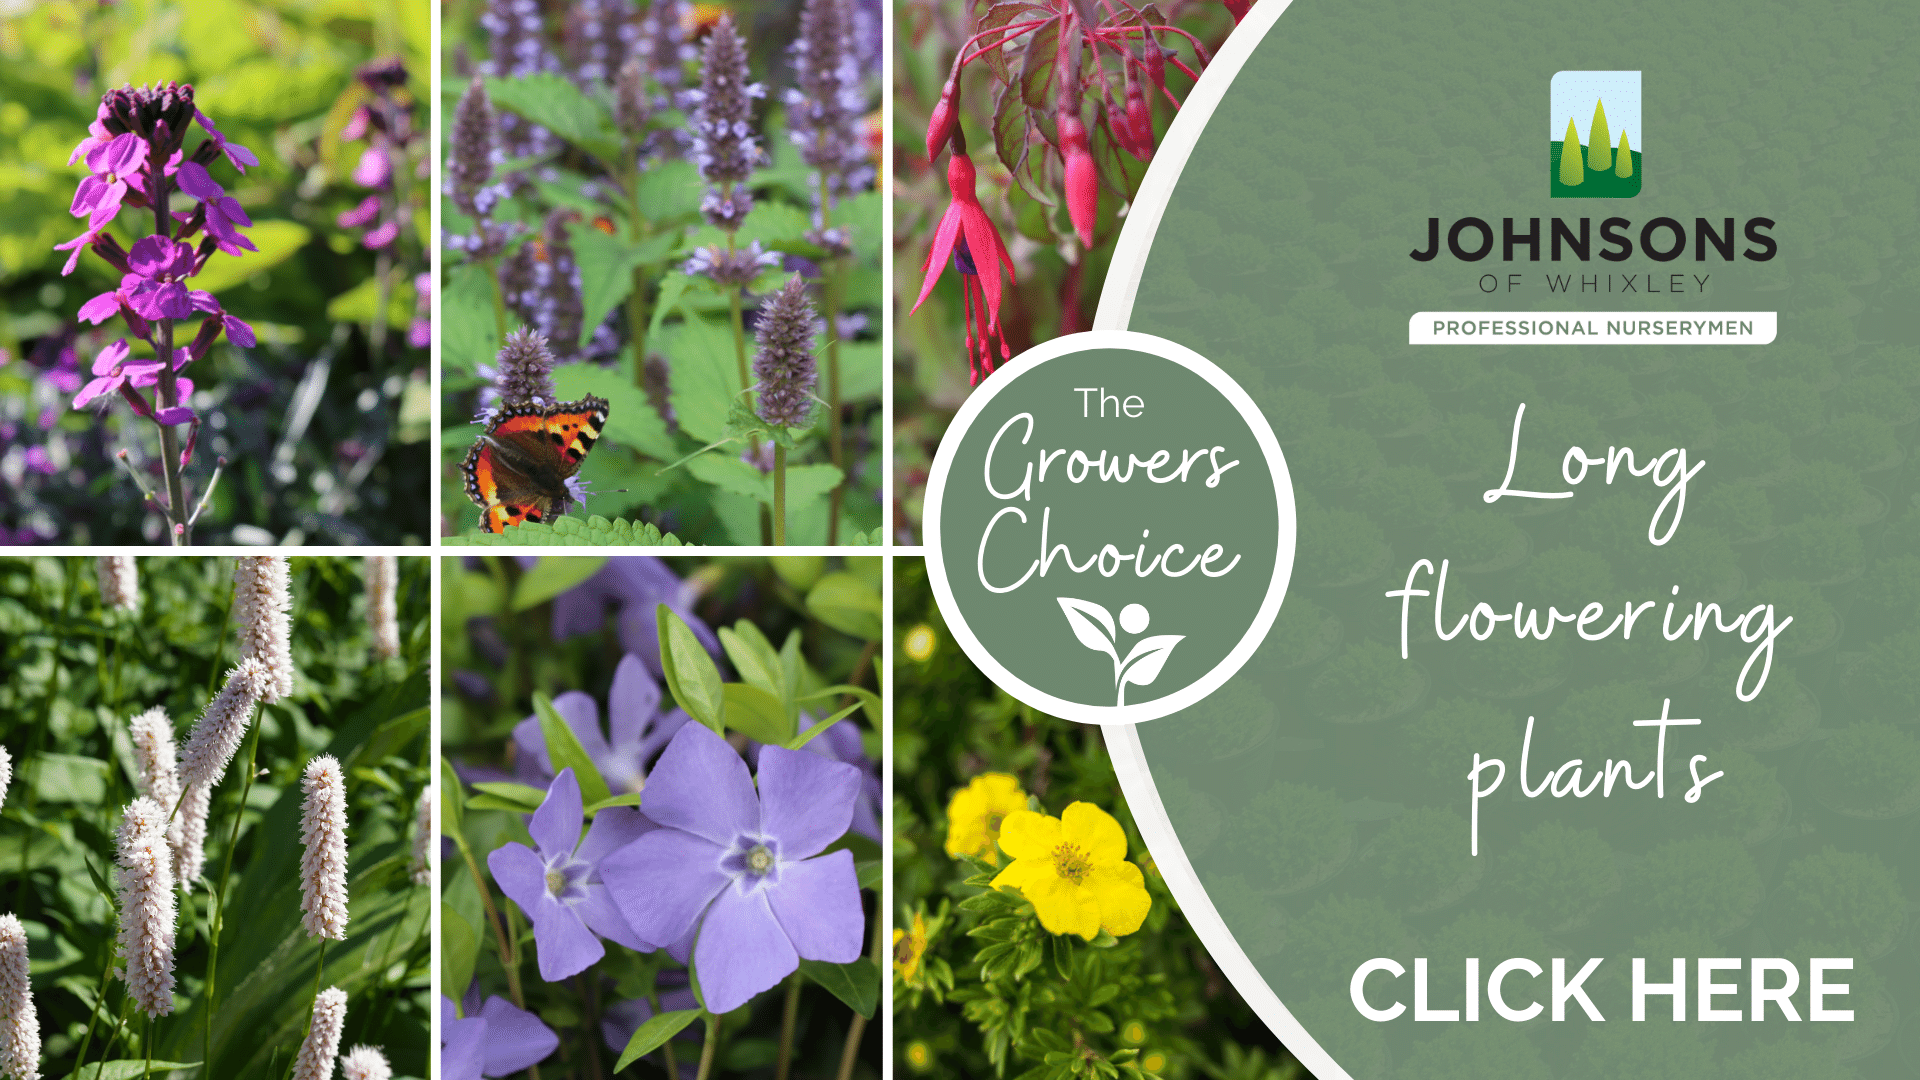 The Growers Choice: Long-flowering plants